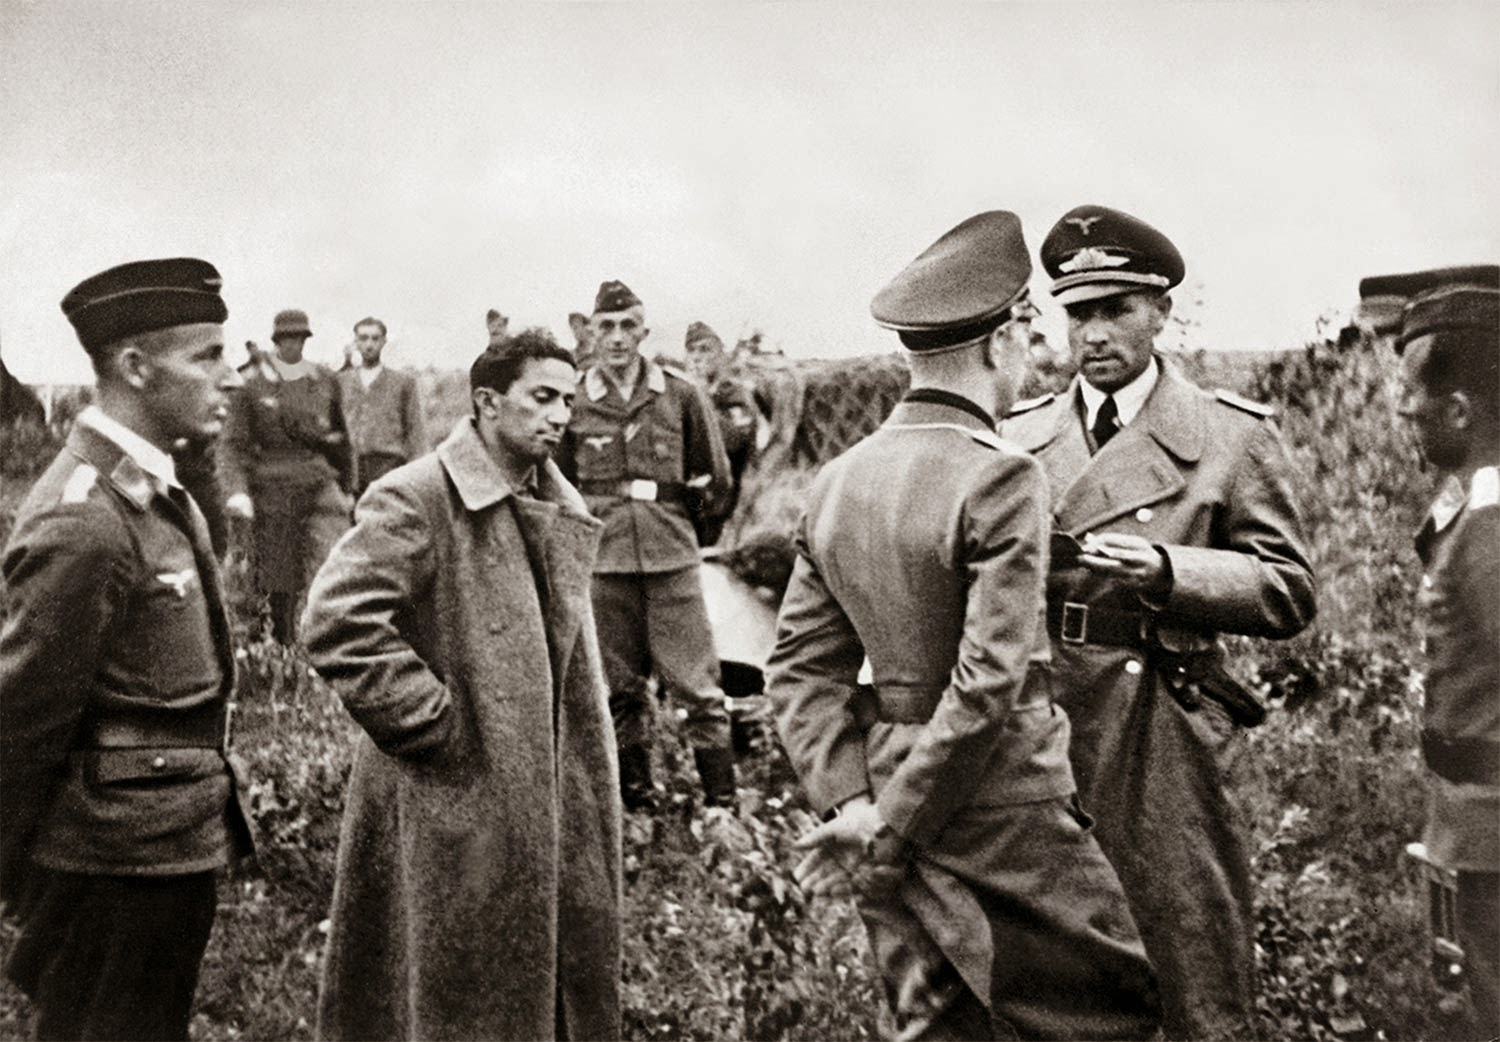 Yakov Dzhugashvili captured by Germans, 1941